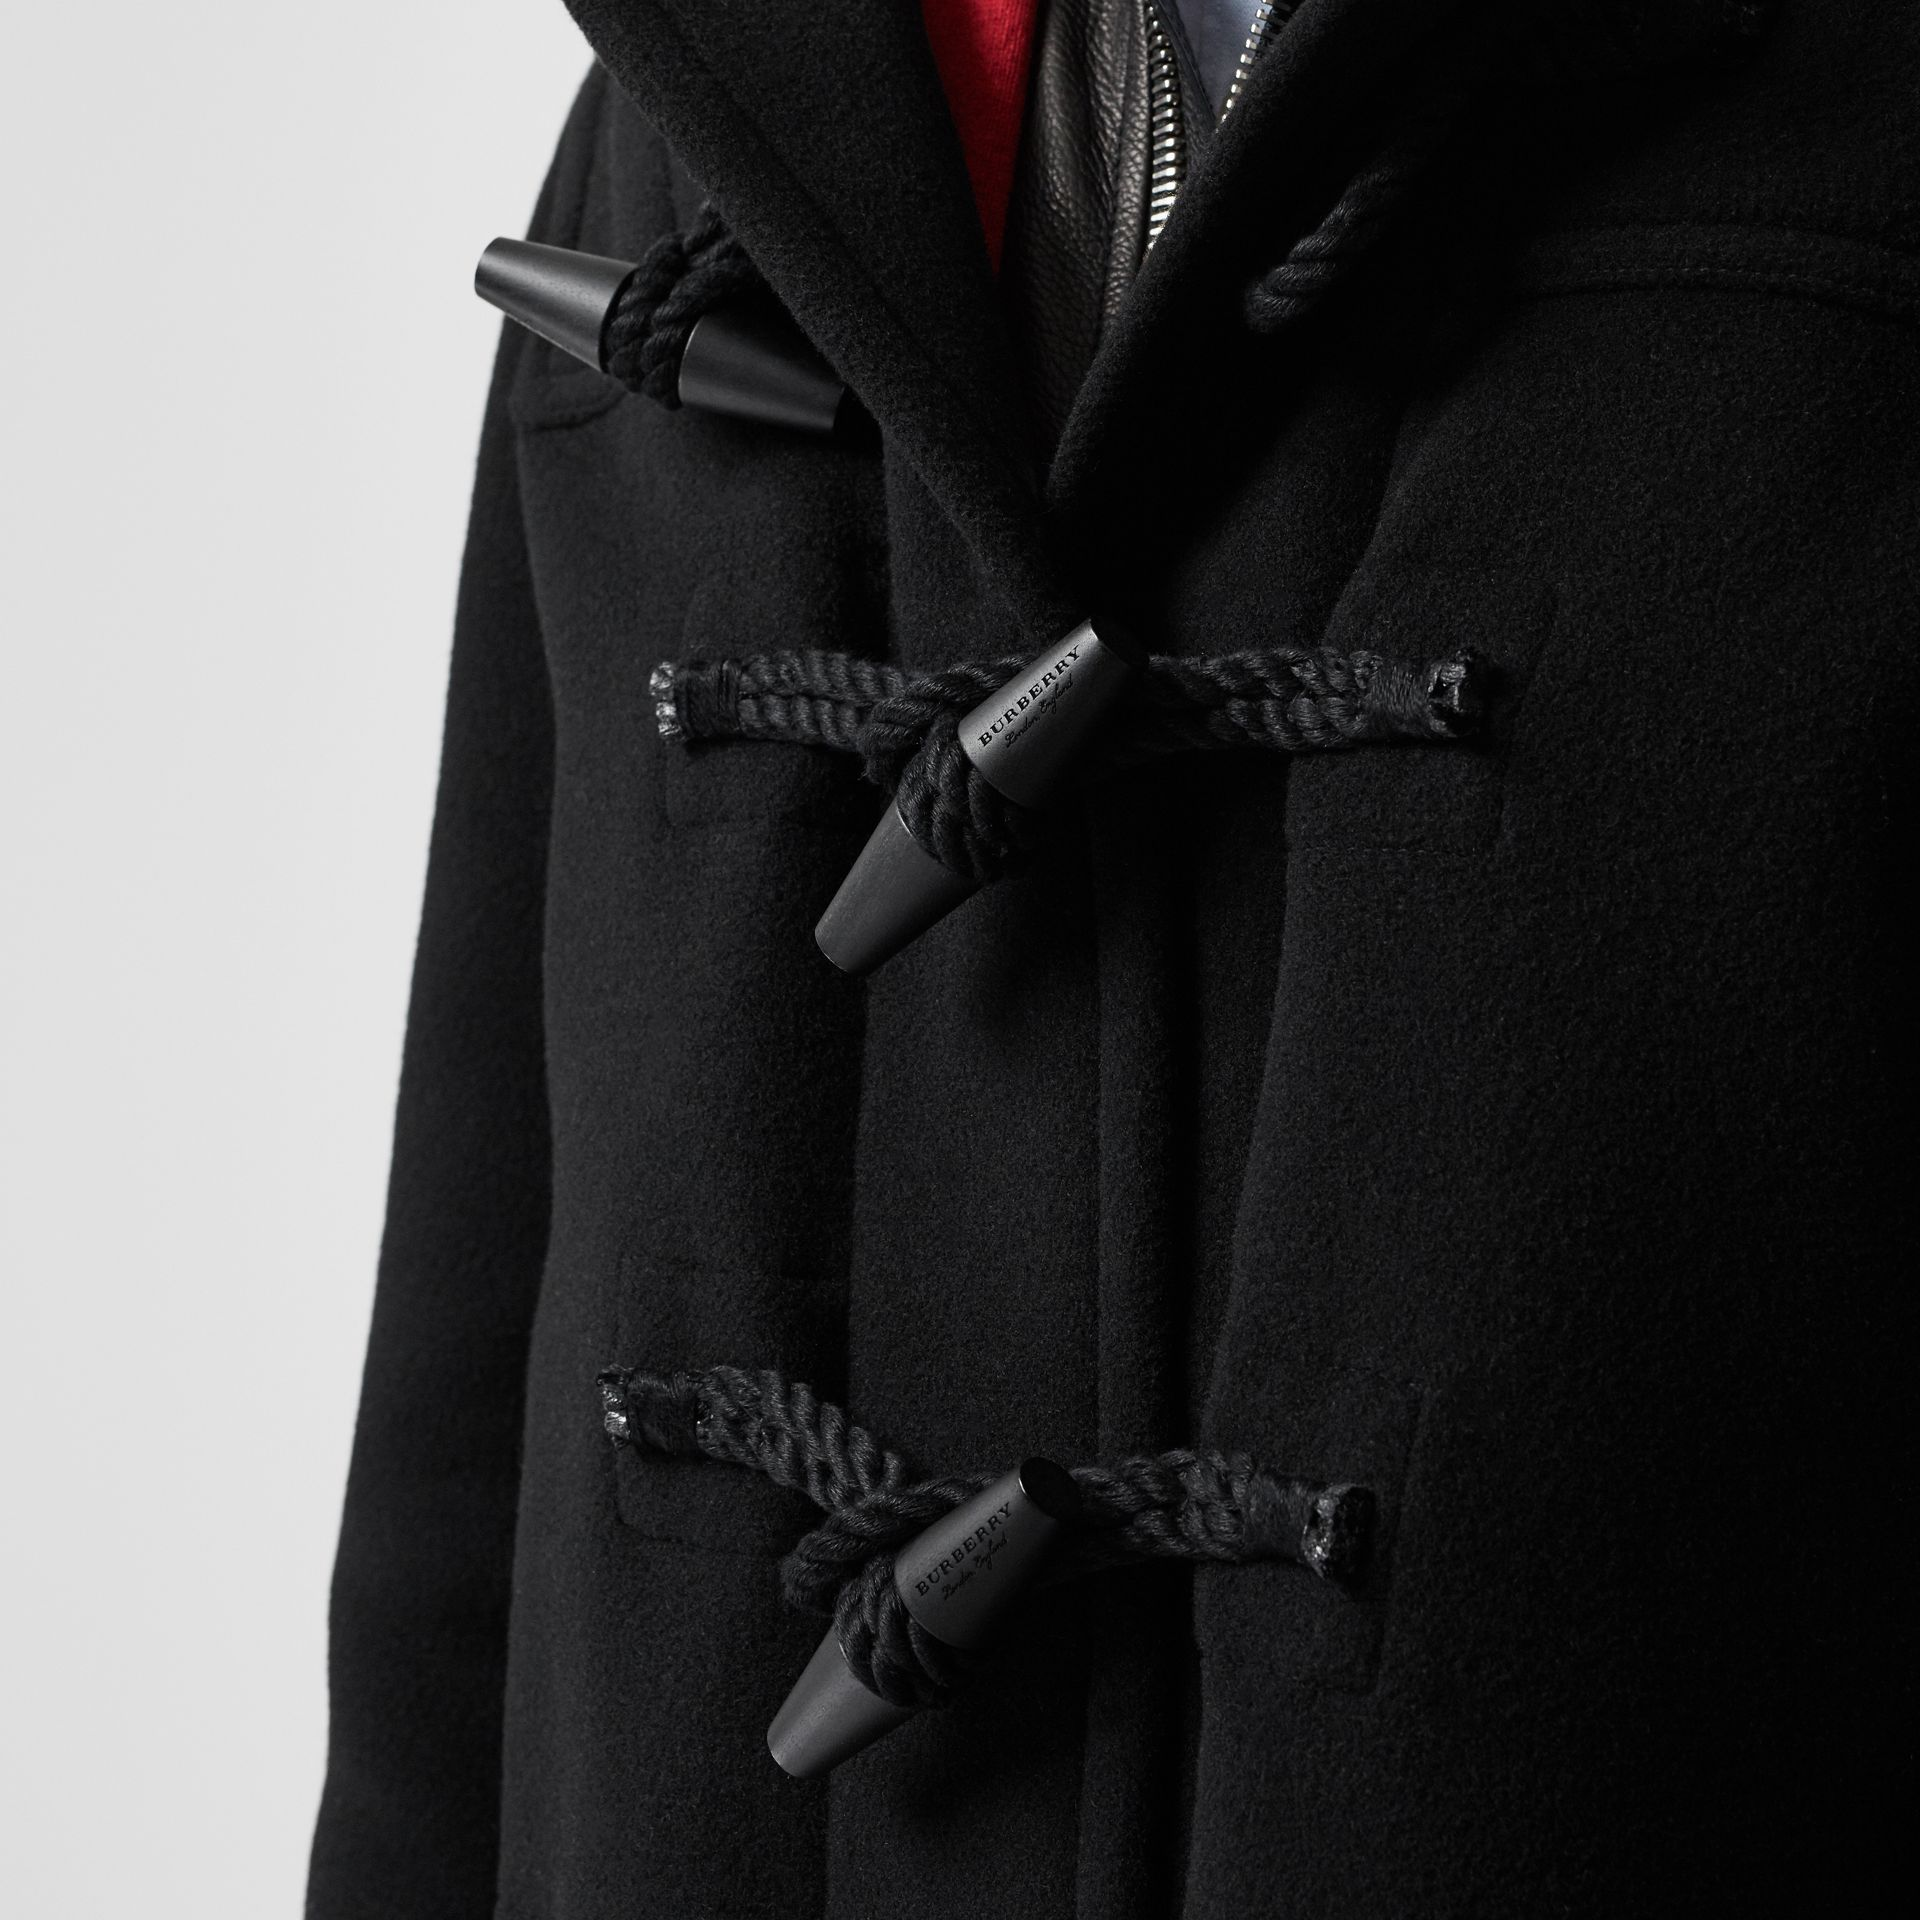 Vintage Check Detail Wool Blend Hooded Duffle Coat in Black - Men | Burberry Australia - gallery image 4